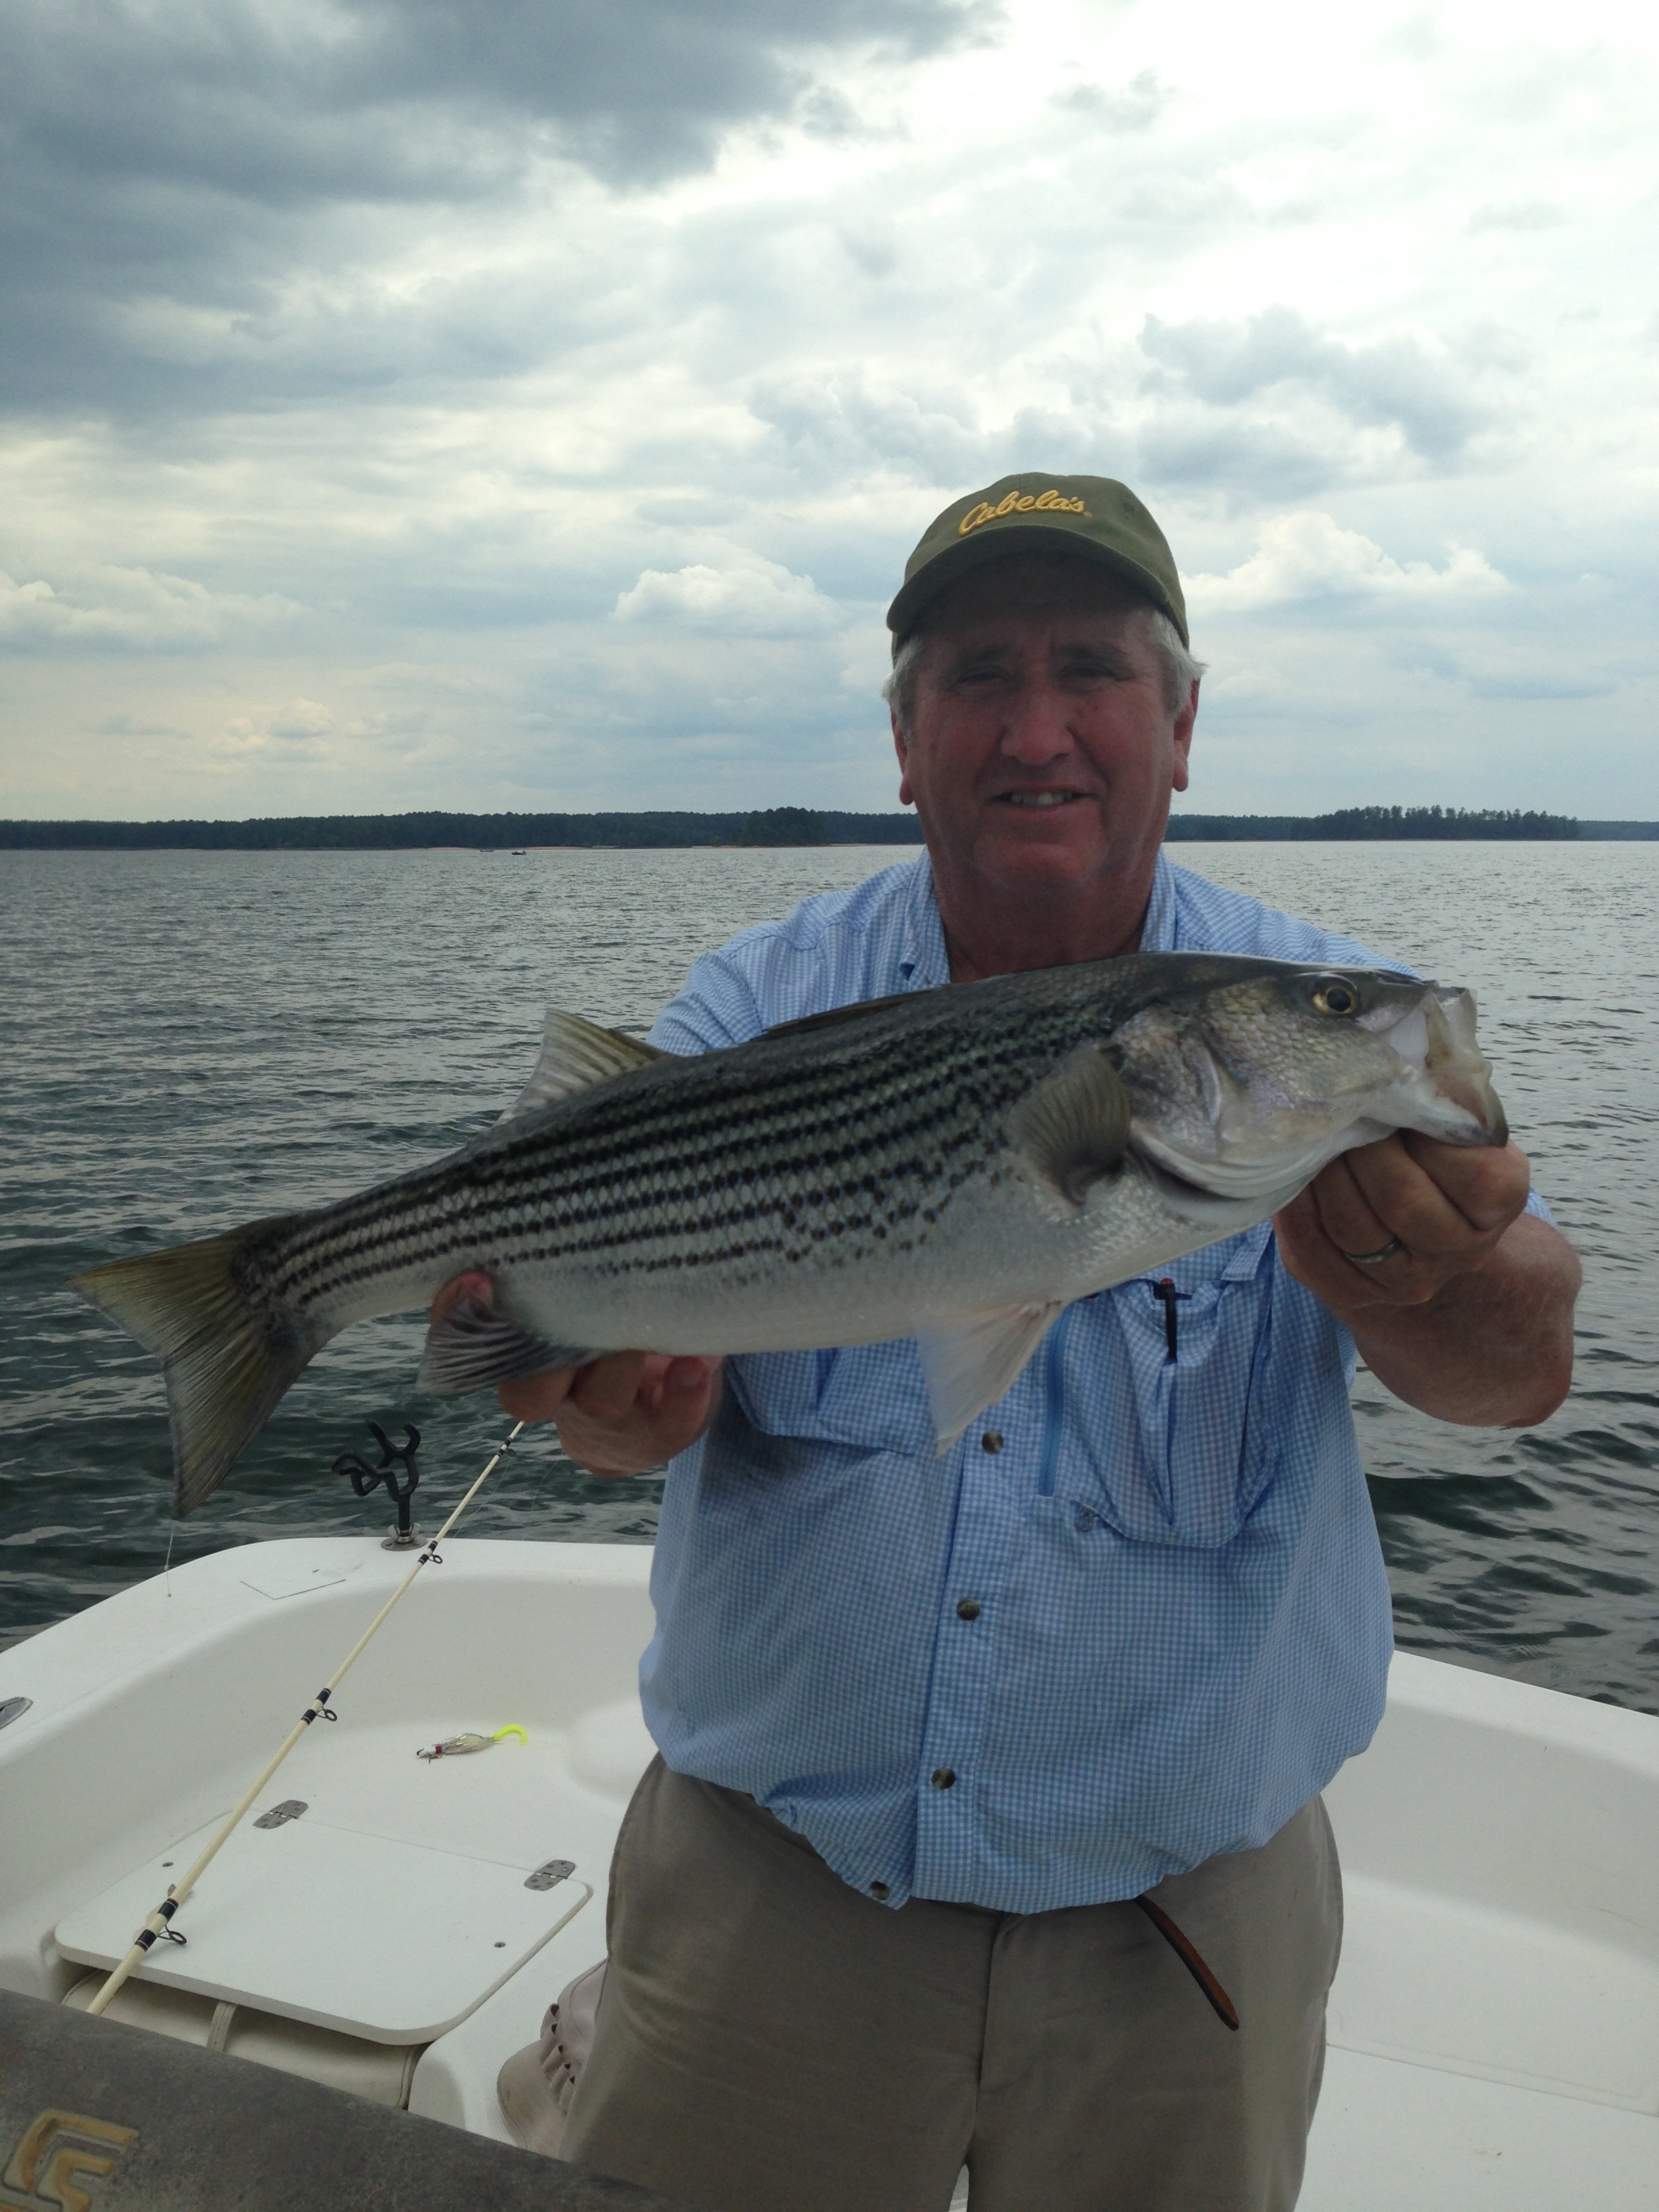 Glenn Smith from Albany, Ga. with 10 lb striper.